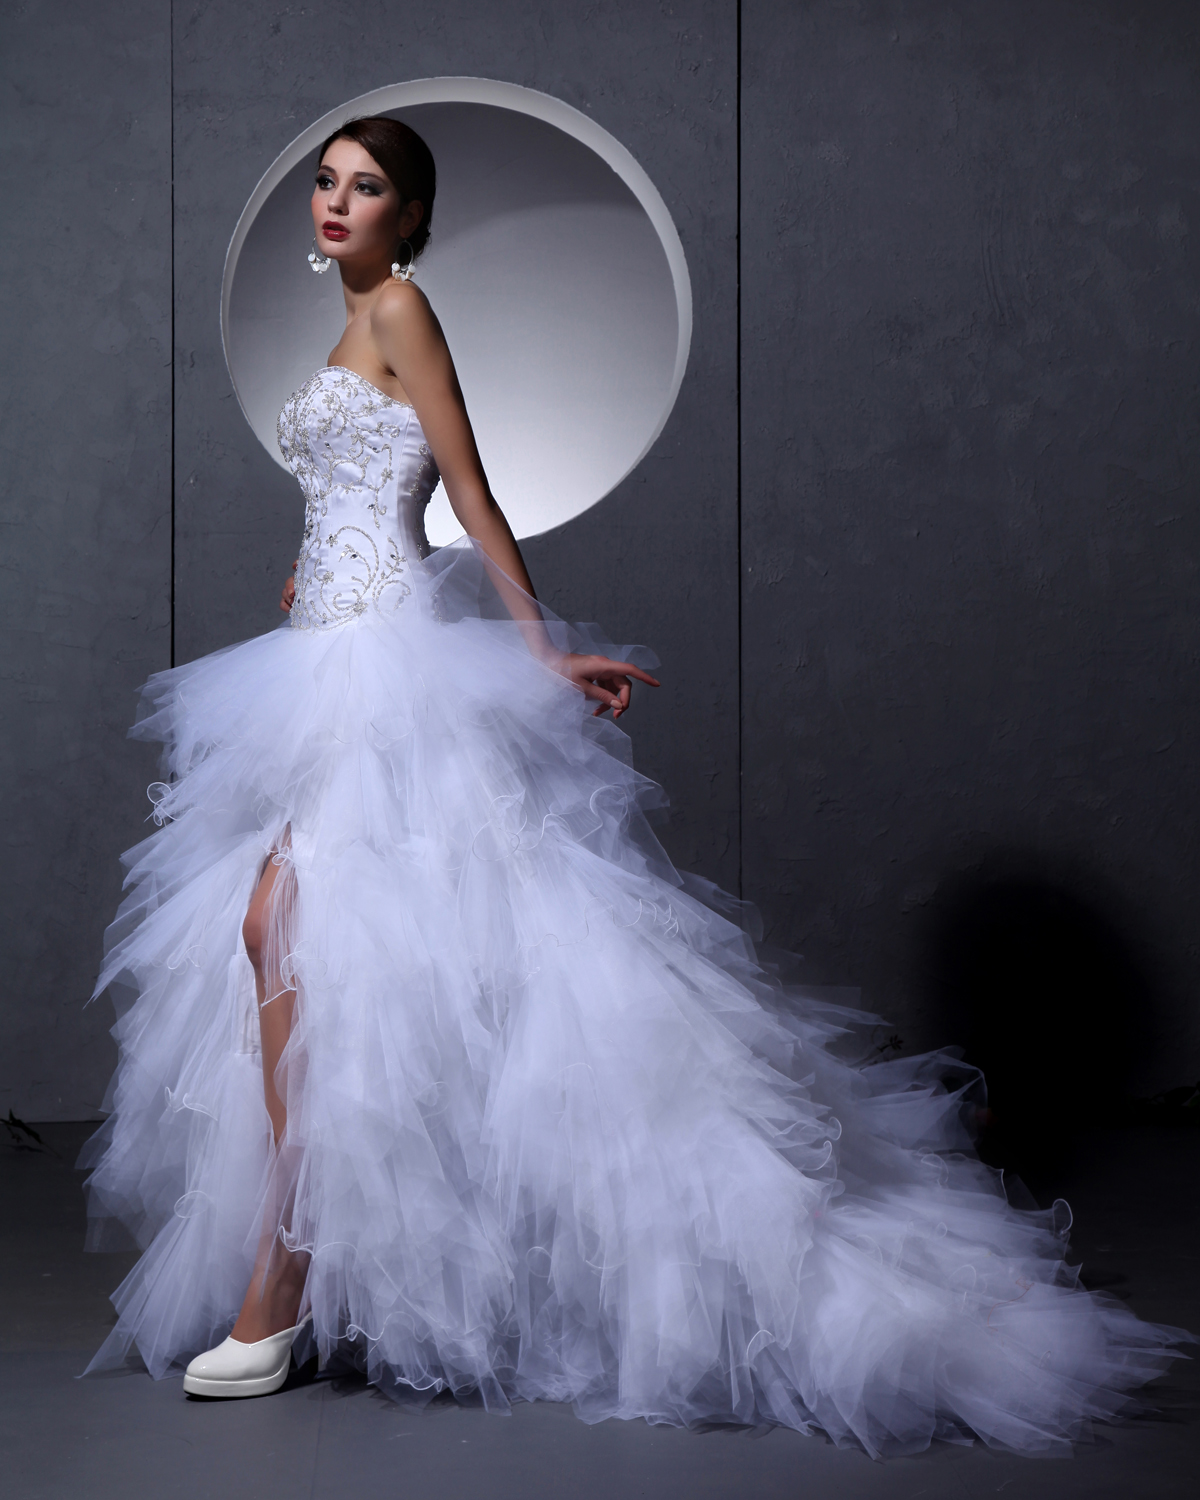 Bien connu de mariee plumes blanches ZN09